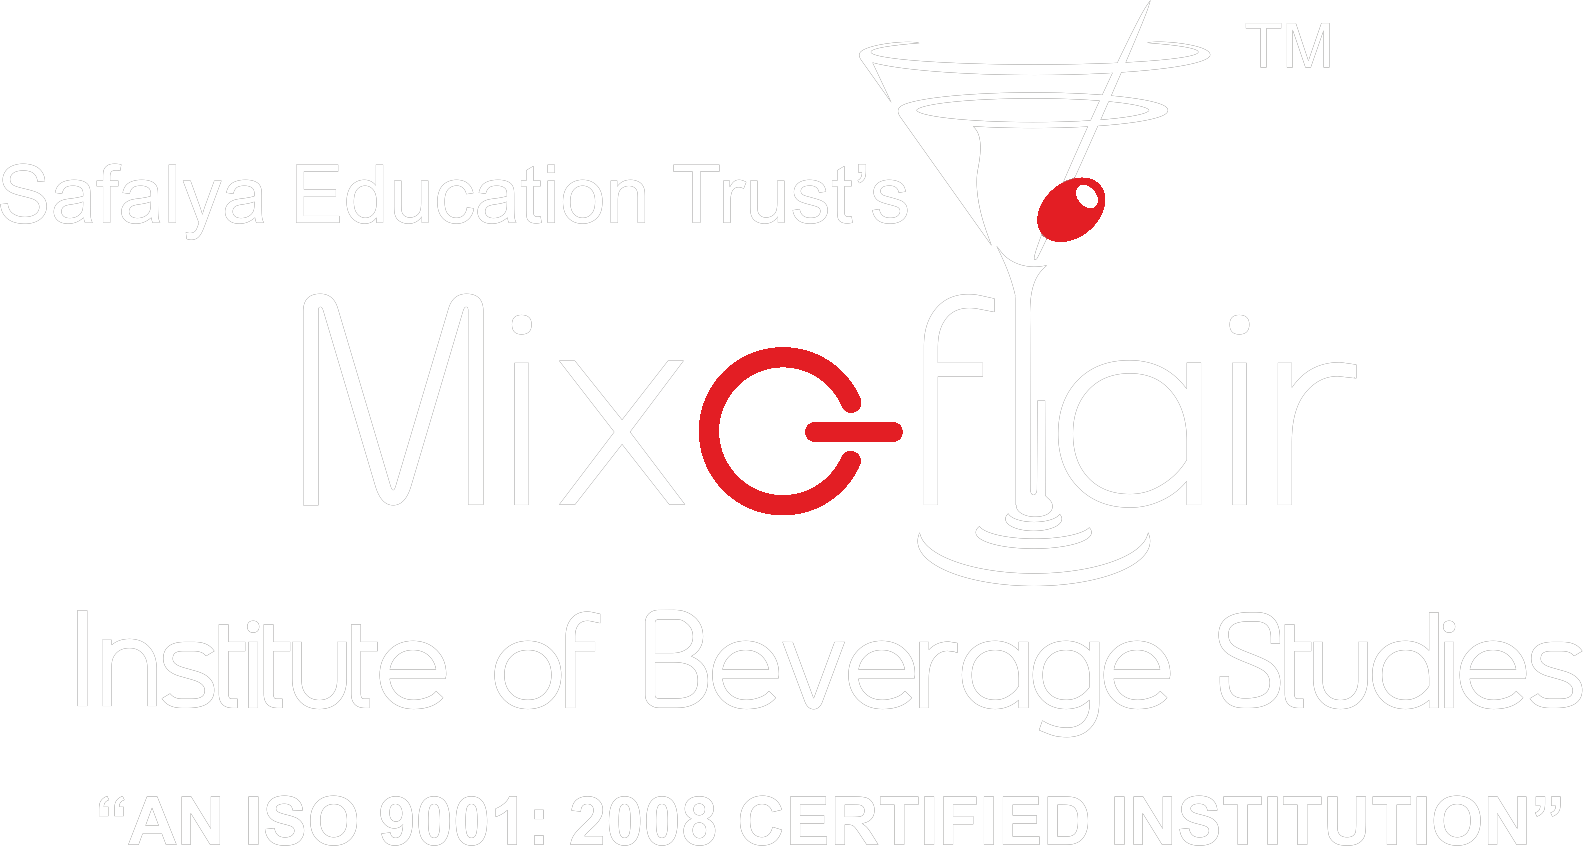 Mixoflair Institute of Beverage Studies